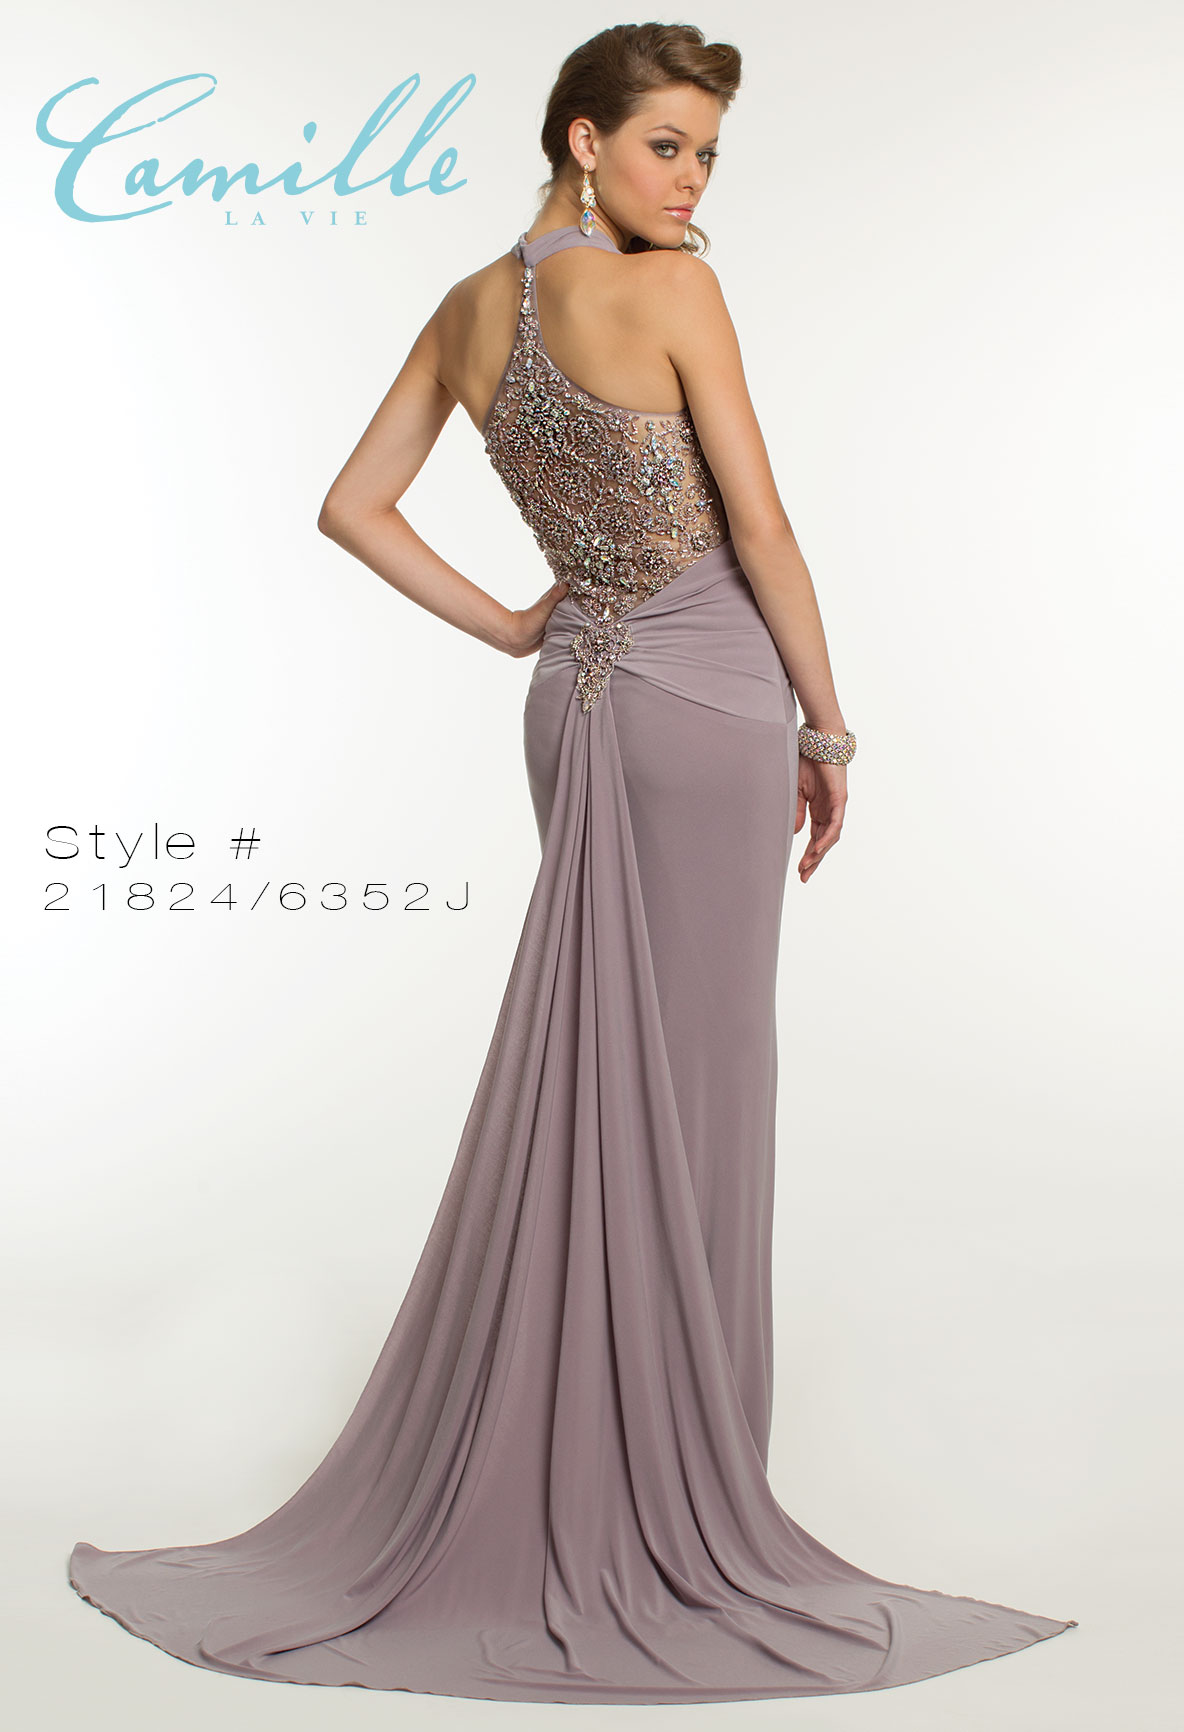 group usa evening dresses photo - 1